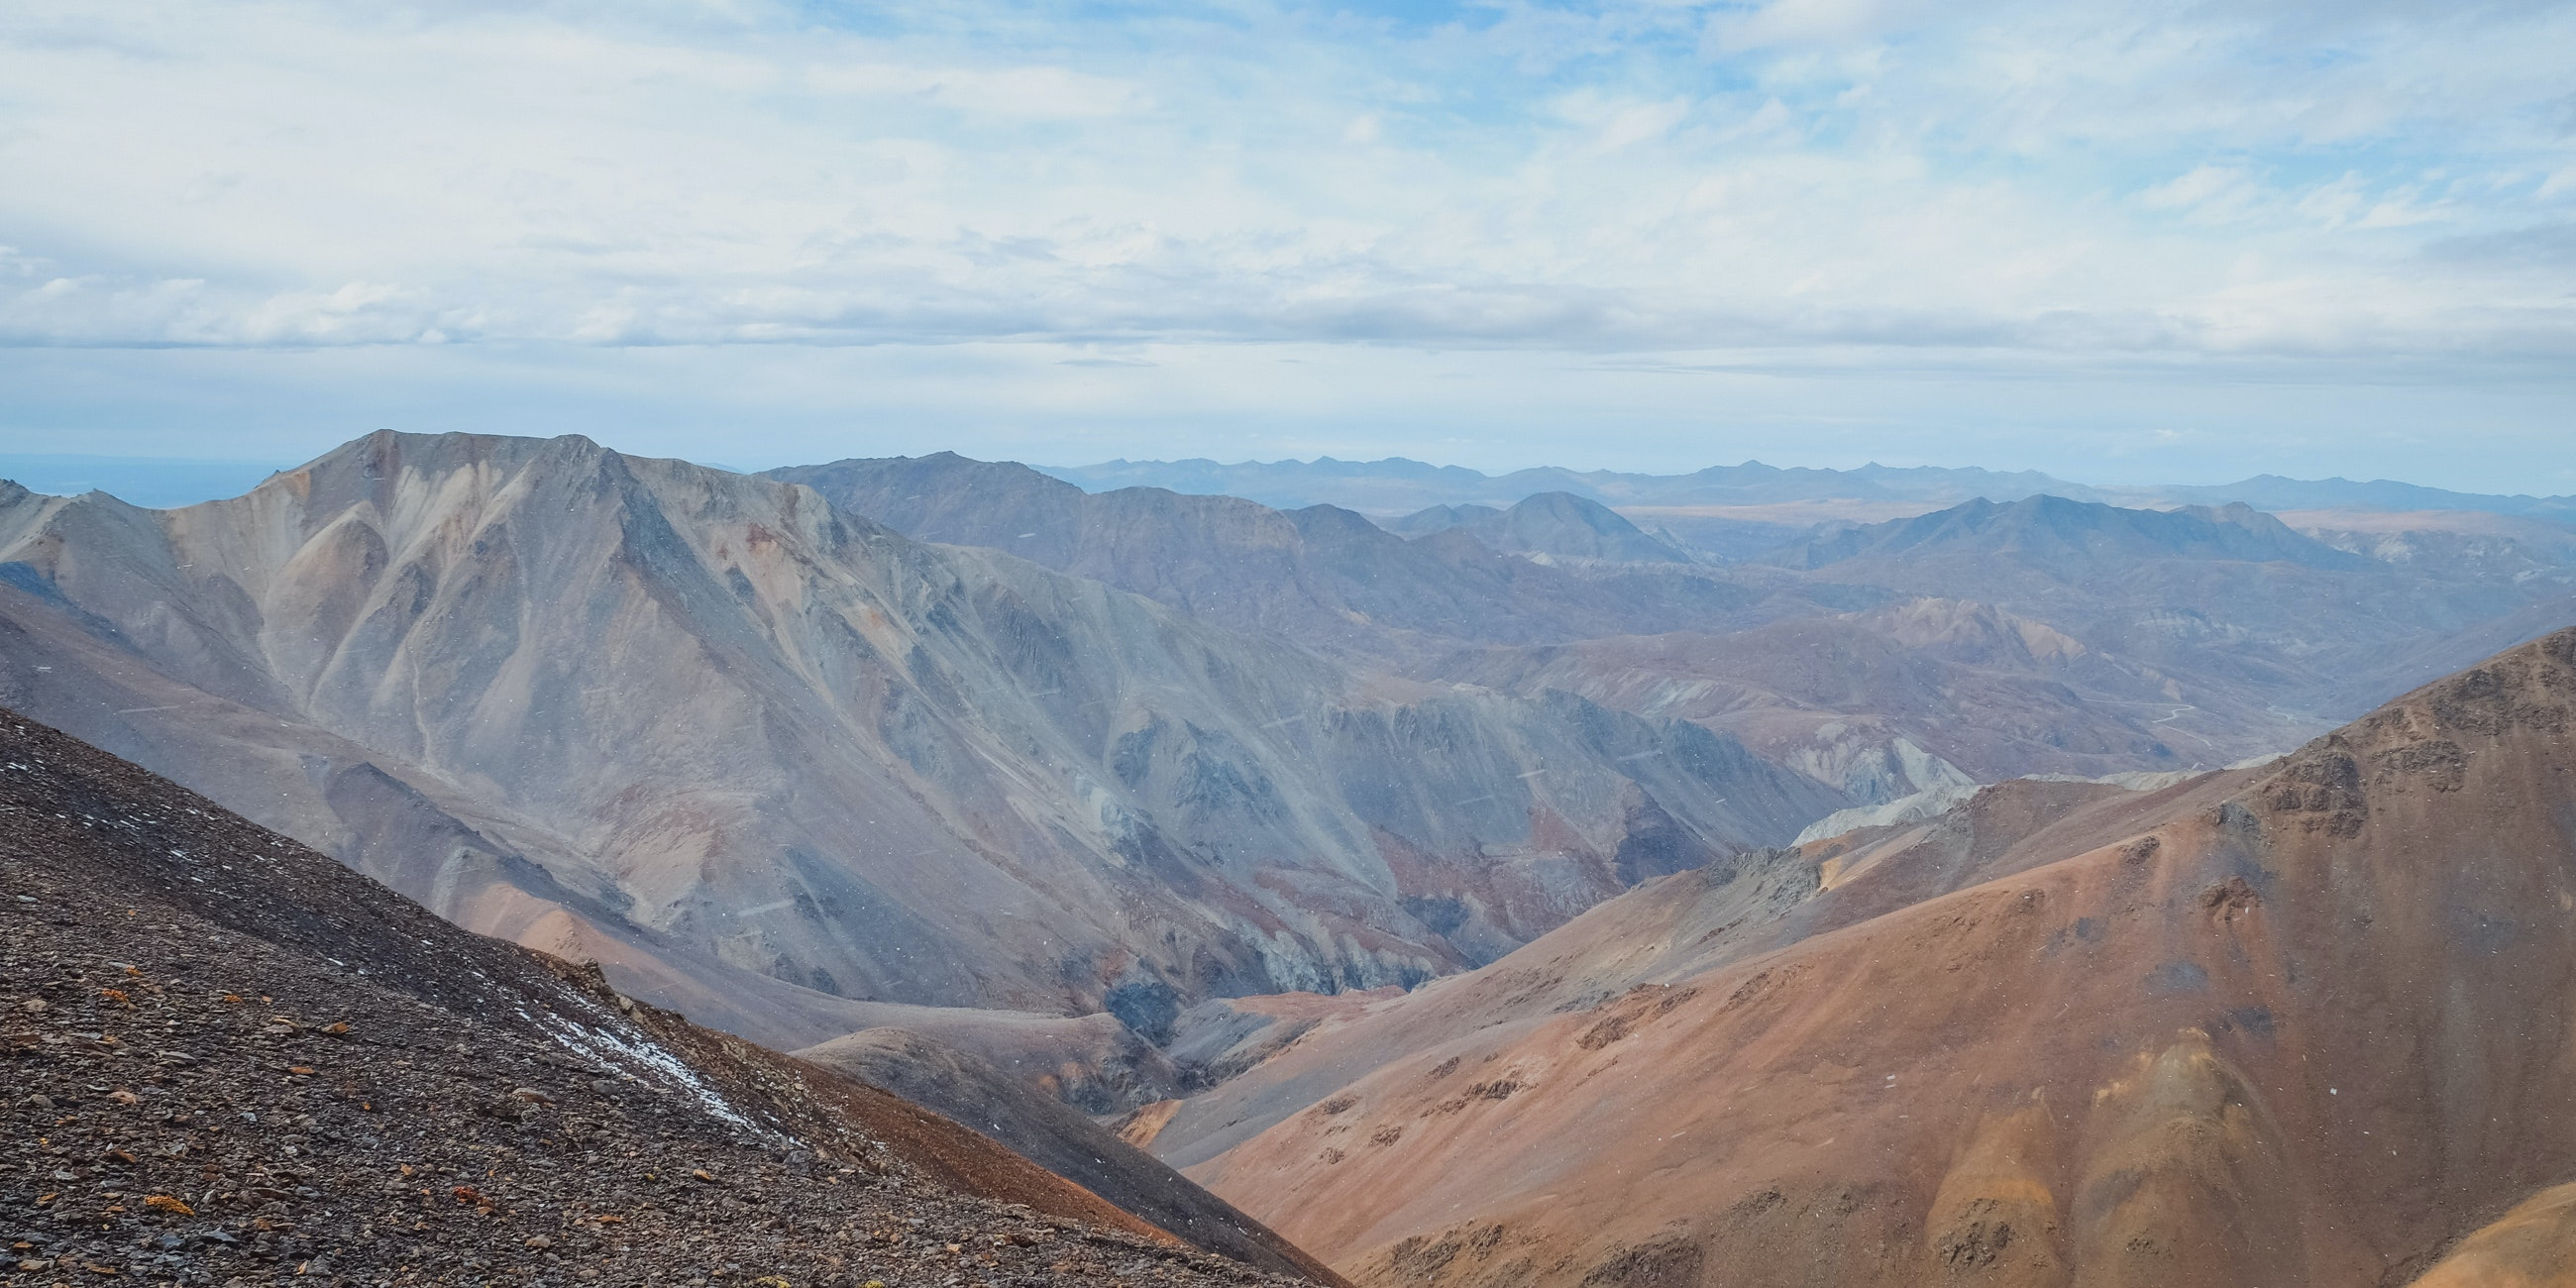 view from the top - Denali National Park